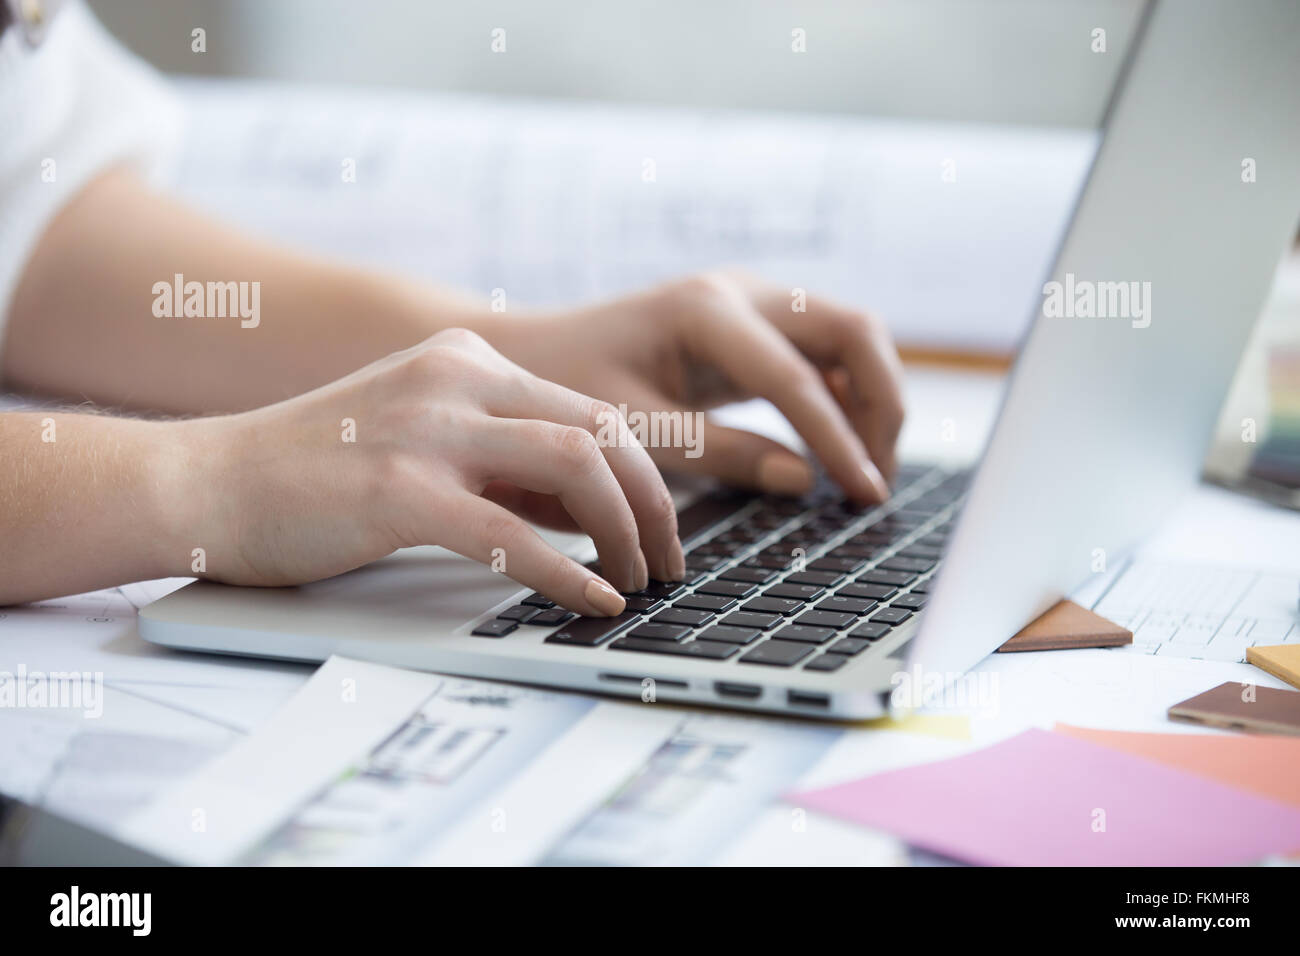 Arms of beautiful young designer woman typing on laptop sitting at home office desk covered in drawings and blueprints - Stock Image